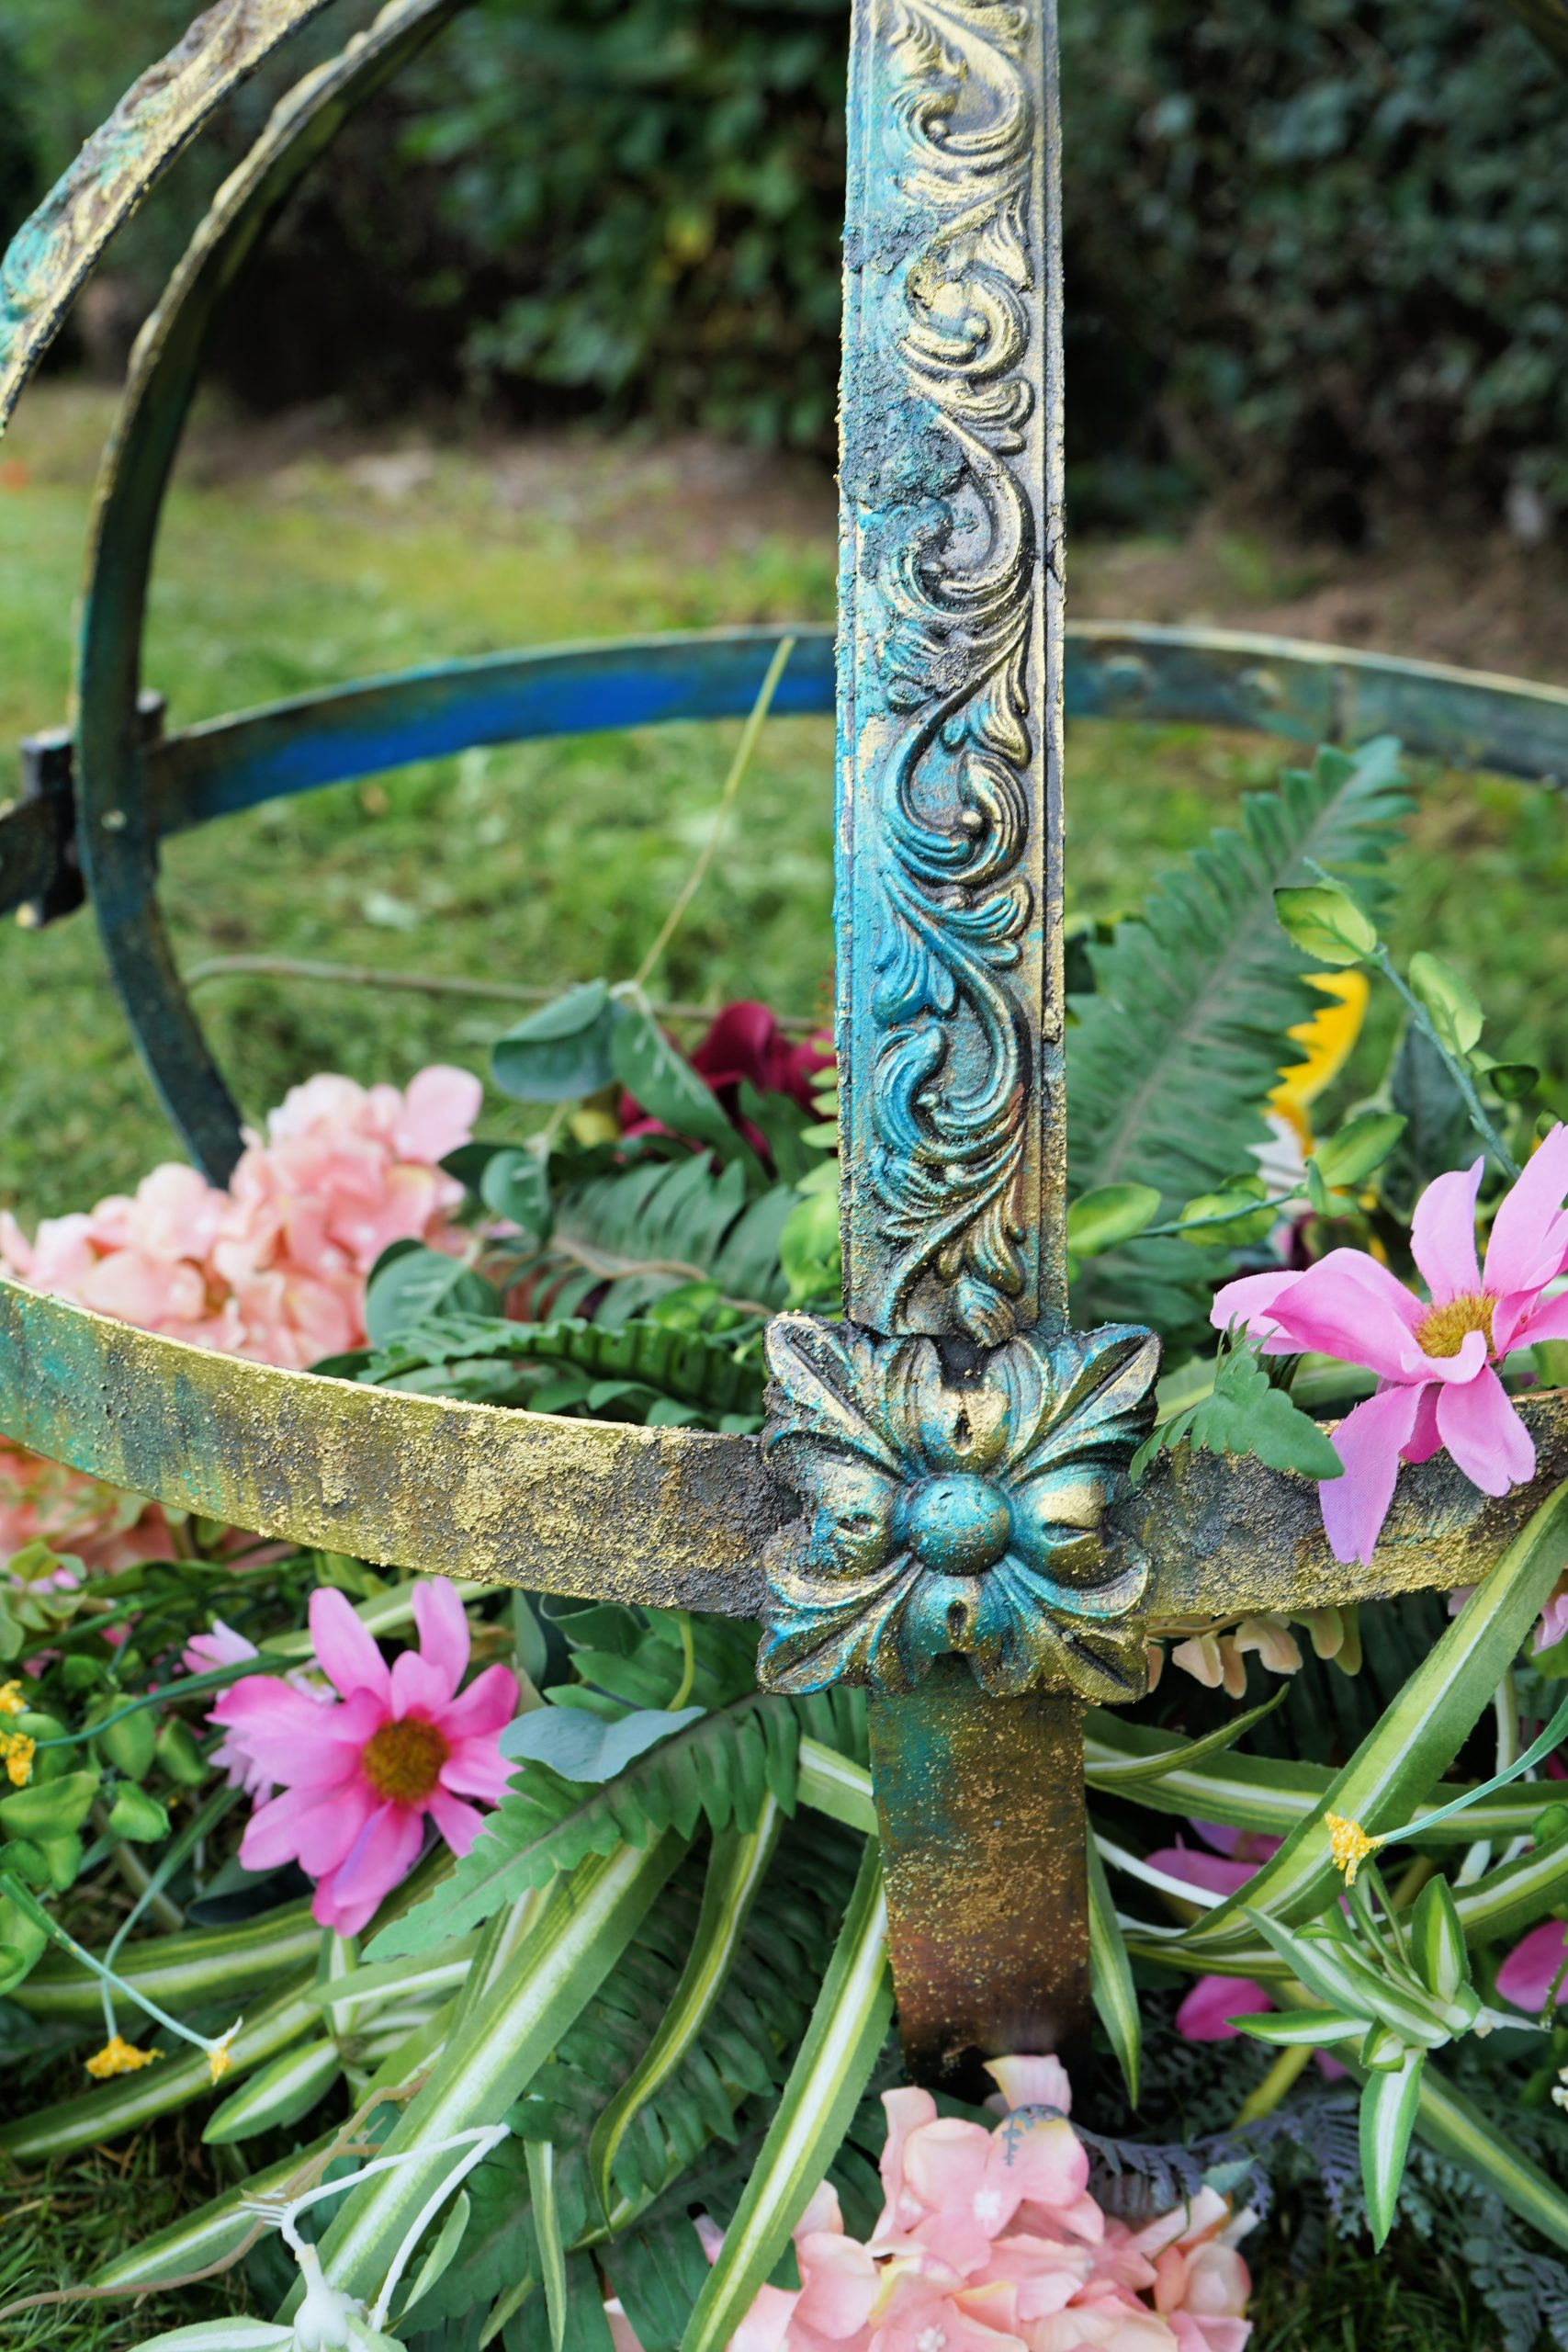 An armillary sphere outside on the grass. Blues, golds and creeens coat the decorative mouldings on it whilst flowers sit inside